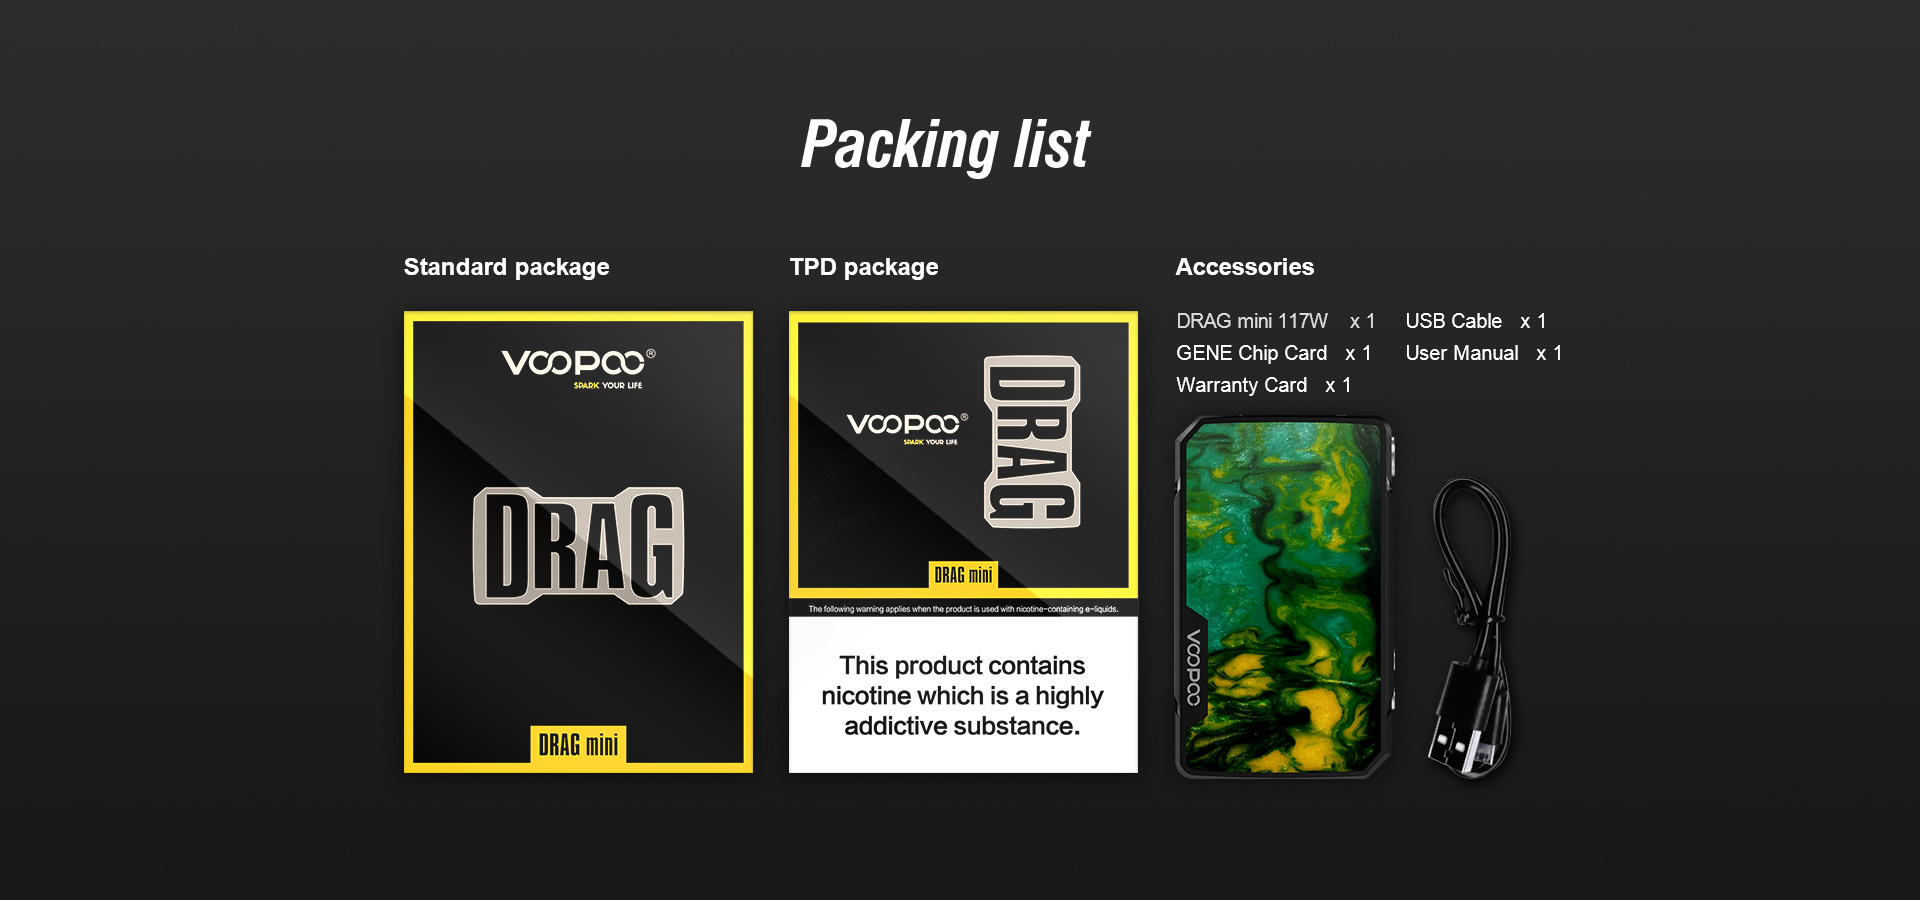 DRAG mini 18 VOOPOO Drag Mini 117W TC Mod 4400mAh Xsmokers